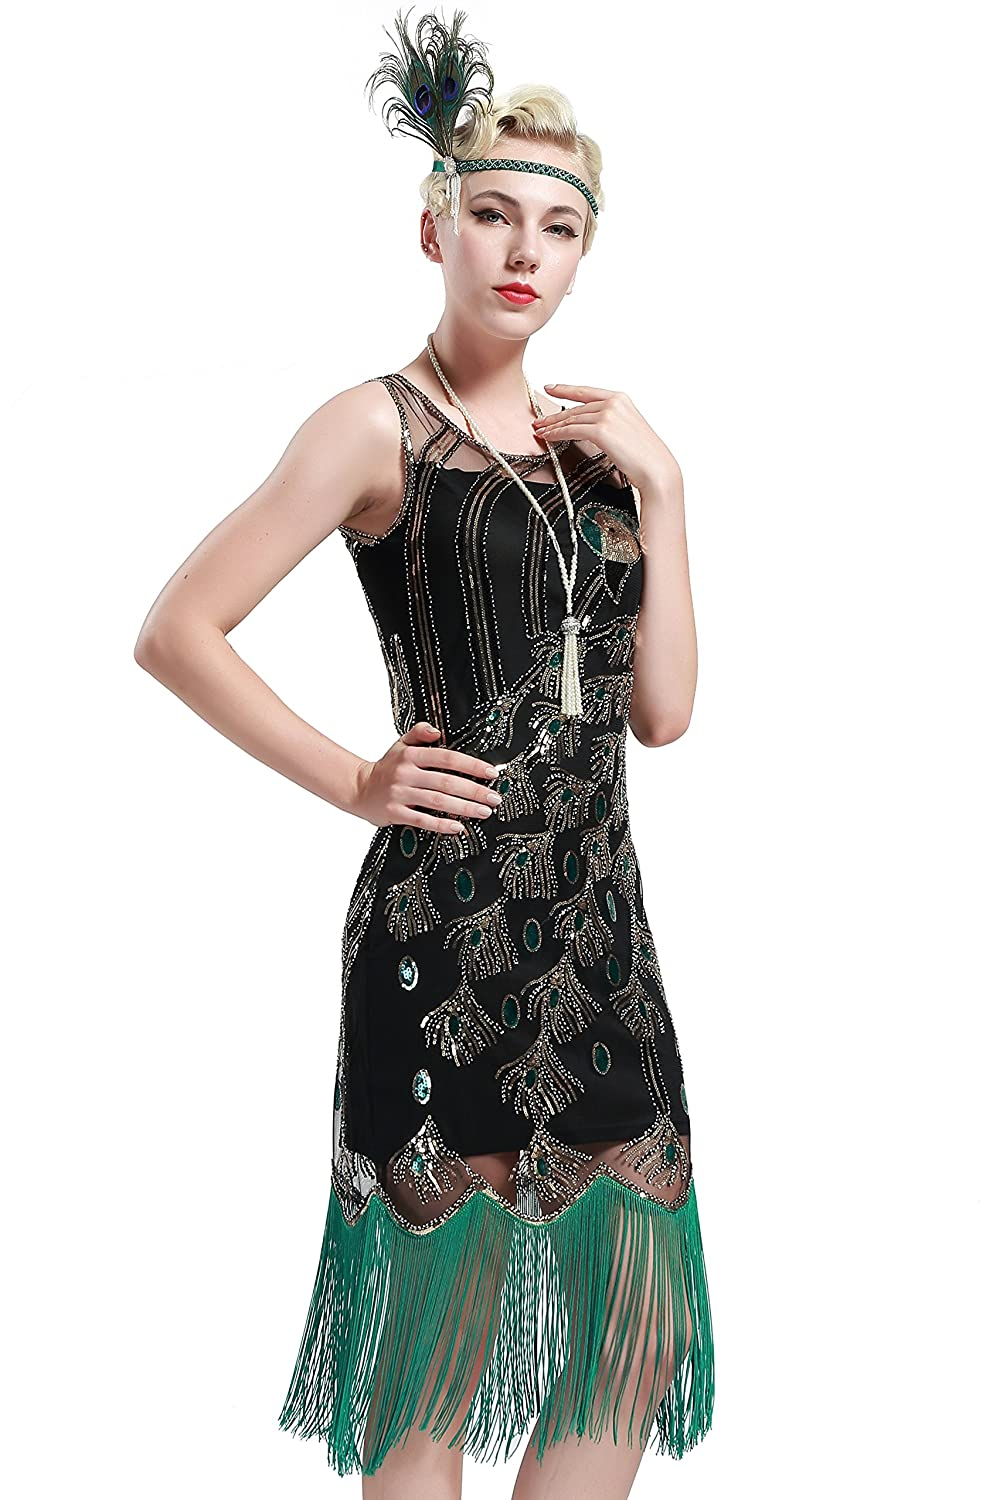 Flapper Costumes, Flapper Girl Costume BABEYOND 20s Vintage Peacock Sequin Fringed Party Flapper Dress $38.99 AT vintagedancer.com